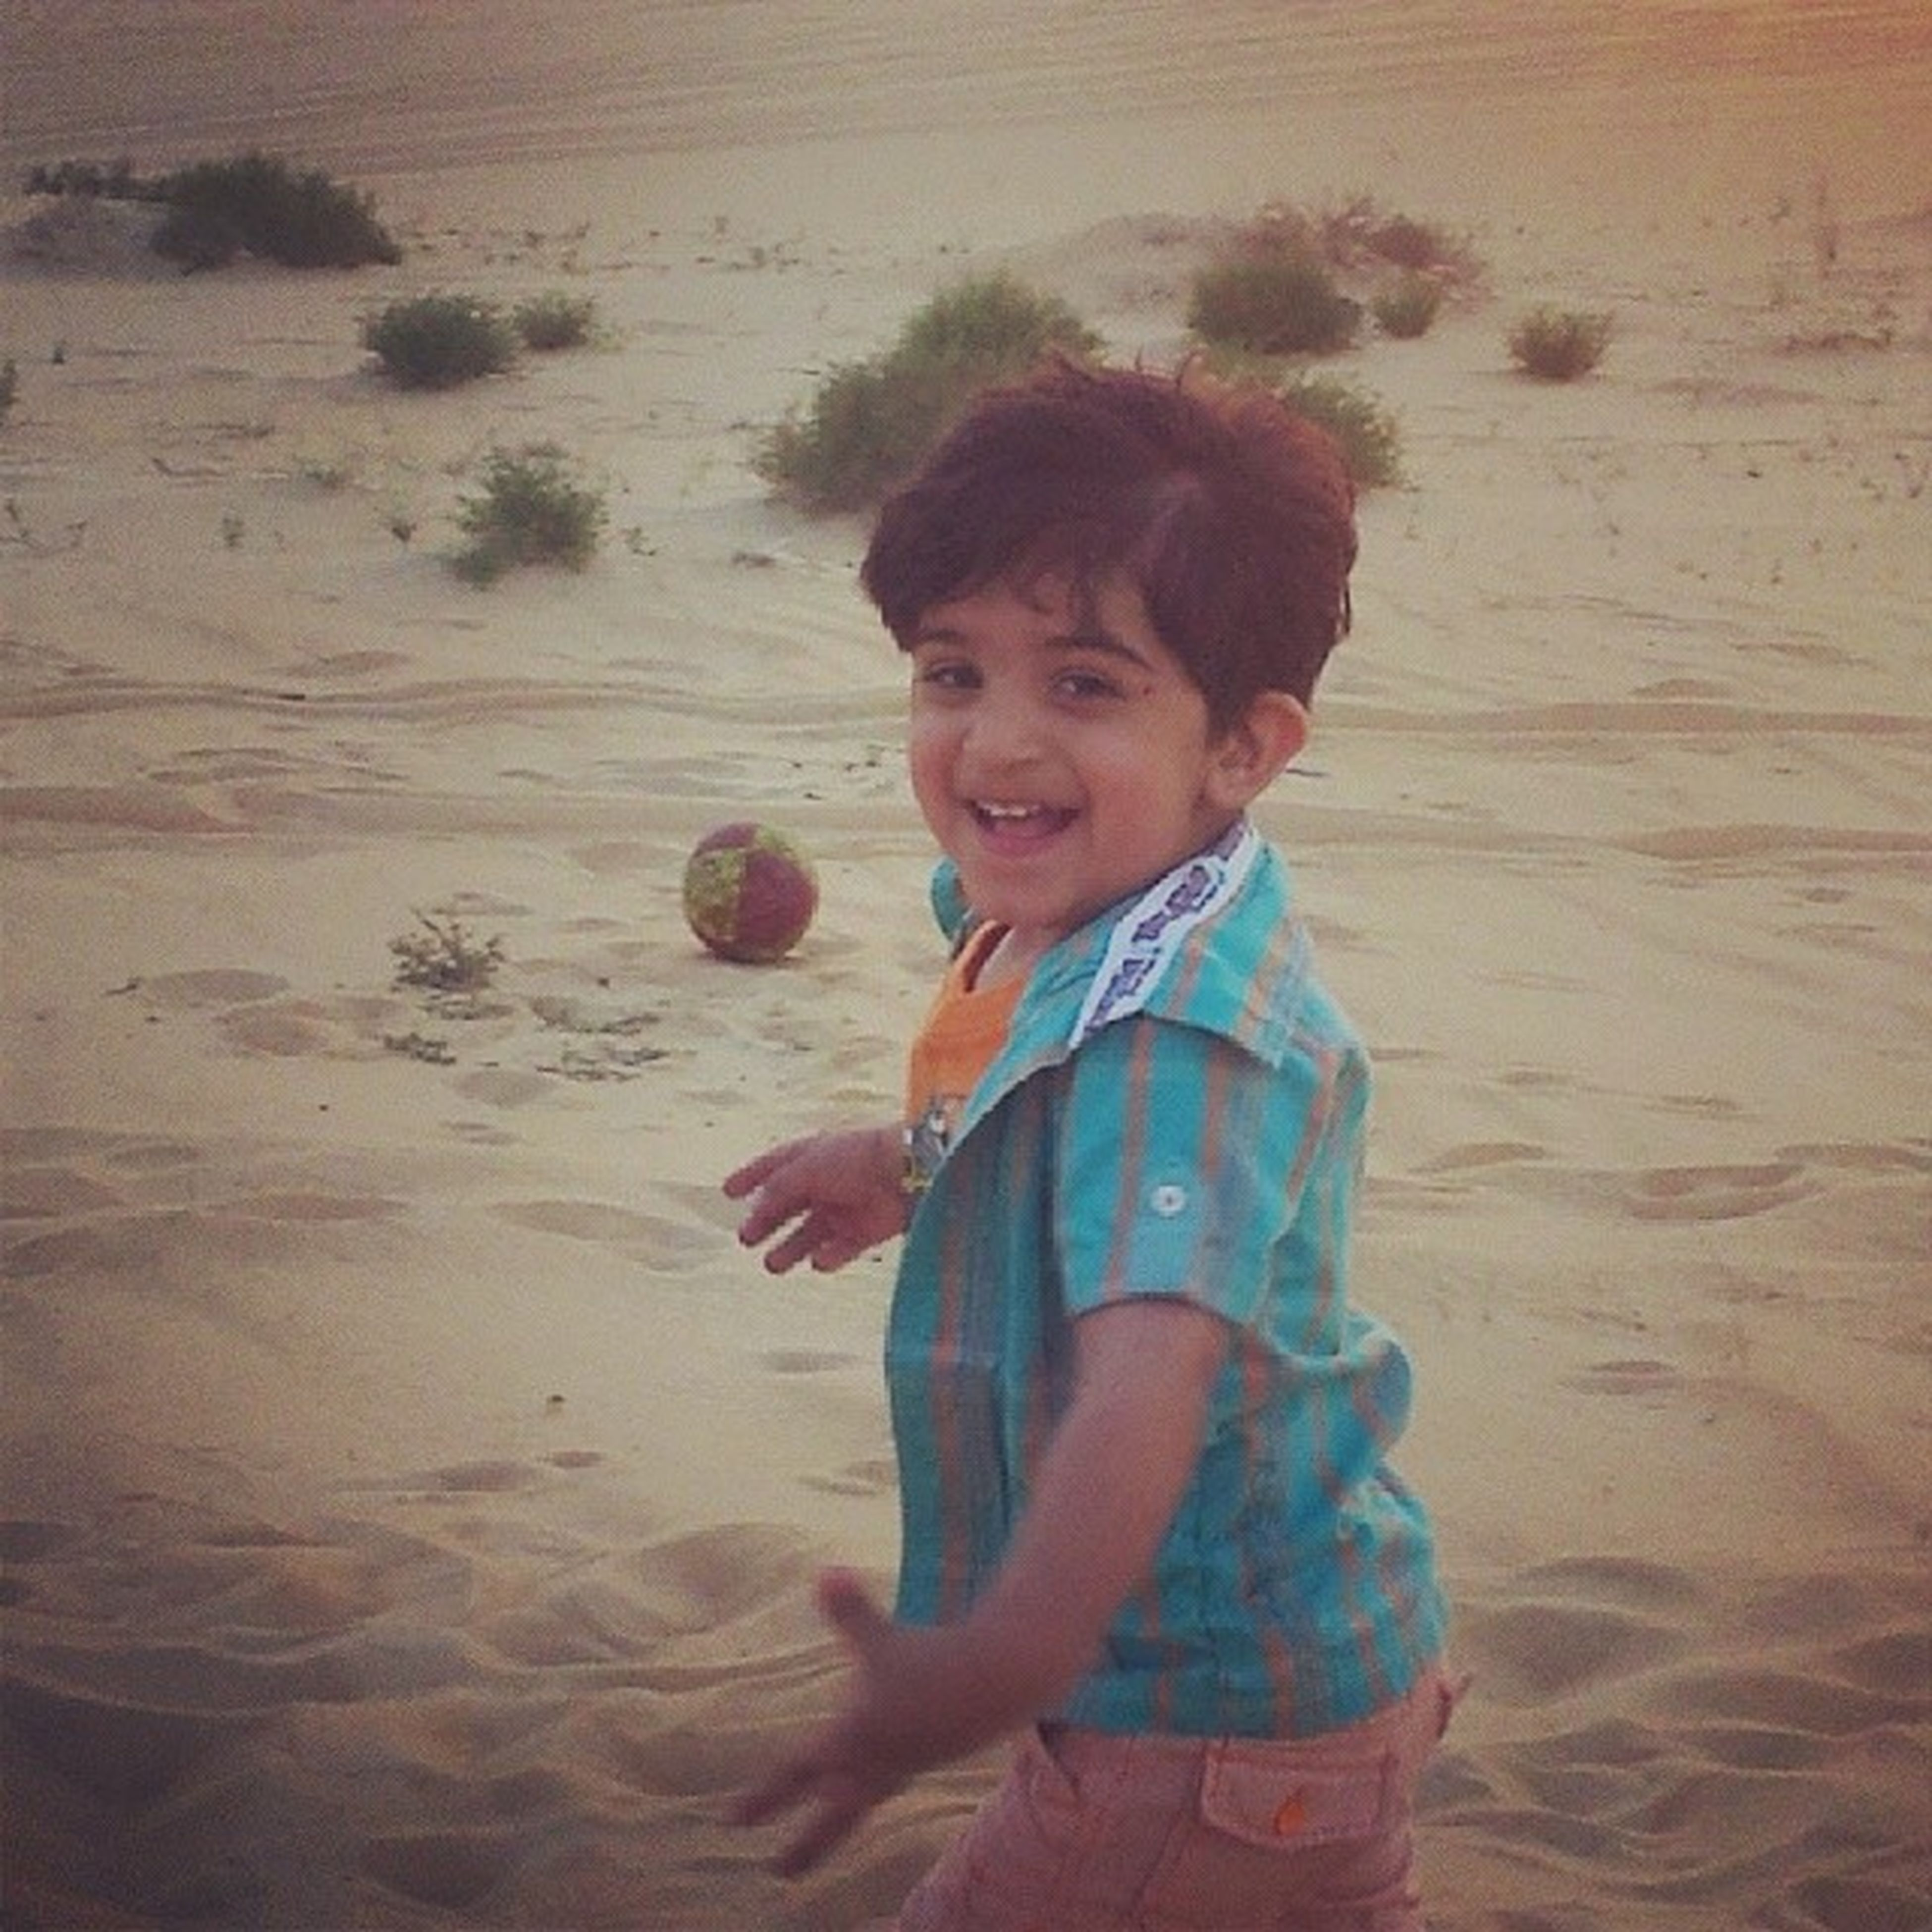 childhood, person, elementary age, lifestyles, sand, leisure activity, boys, beach, casual clothing, innocence, cute, full length, portrait, looking at camera, smiling, happiness, girls, front view